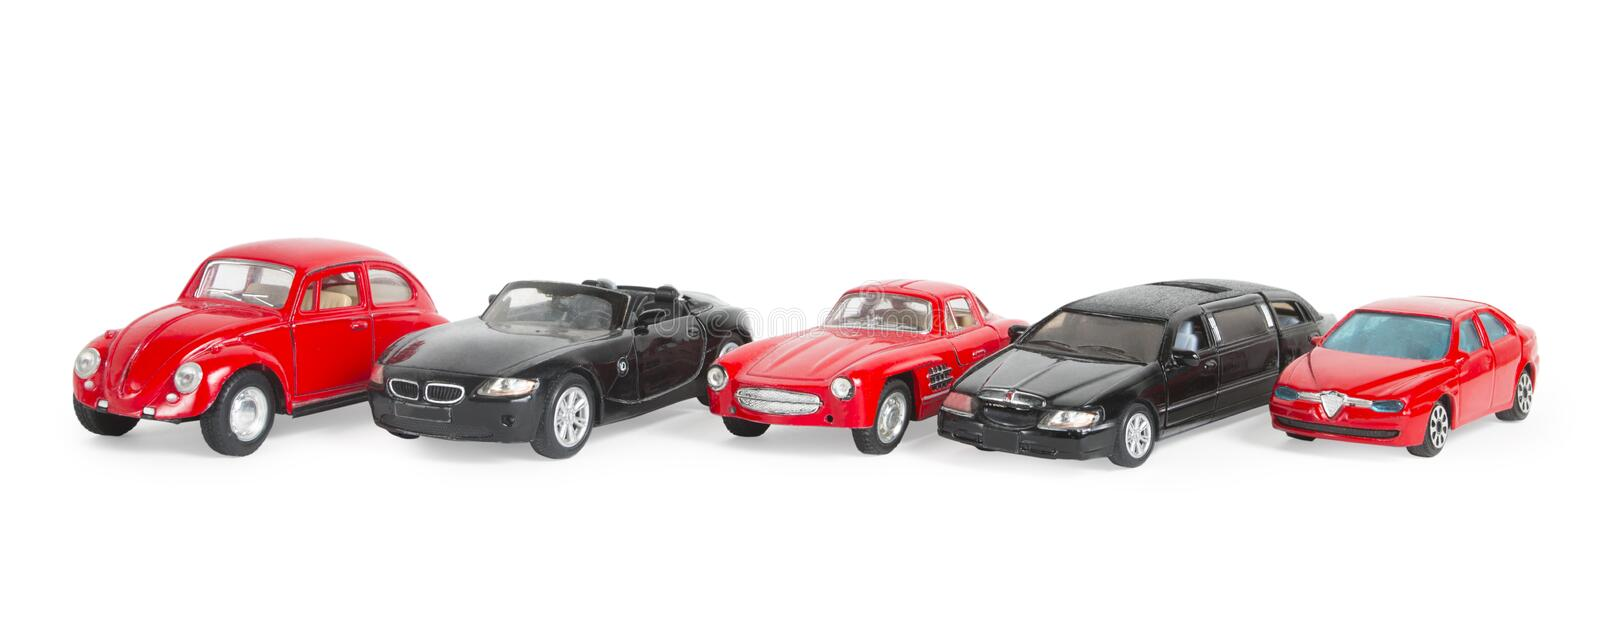 Five retro red and black toy cars isolated on white royalty free stock photo